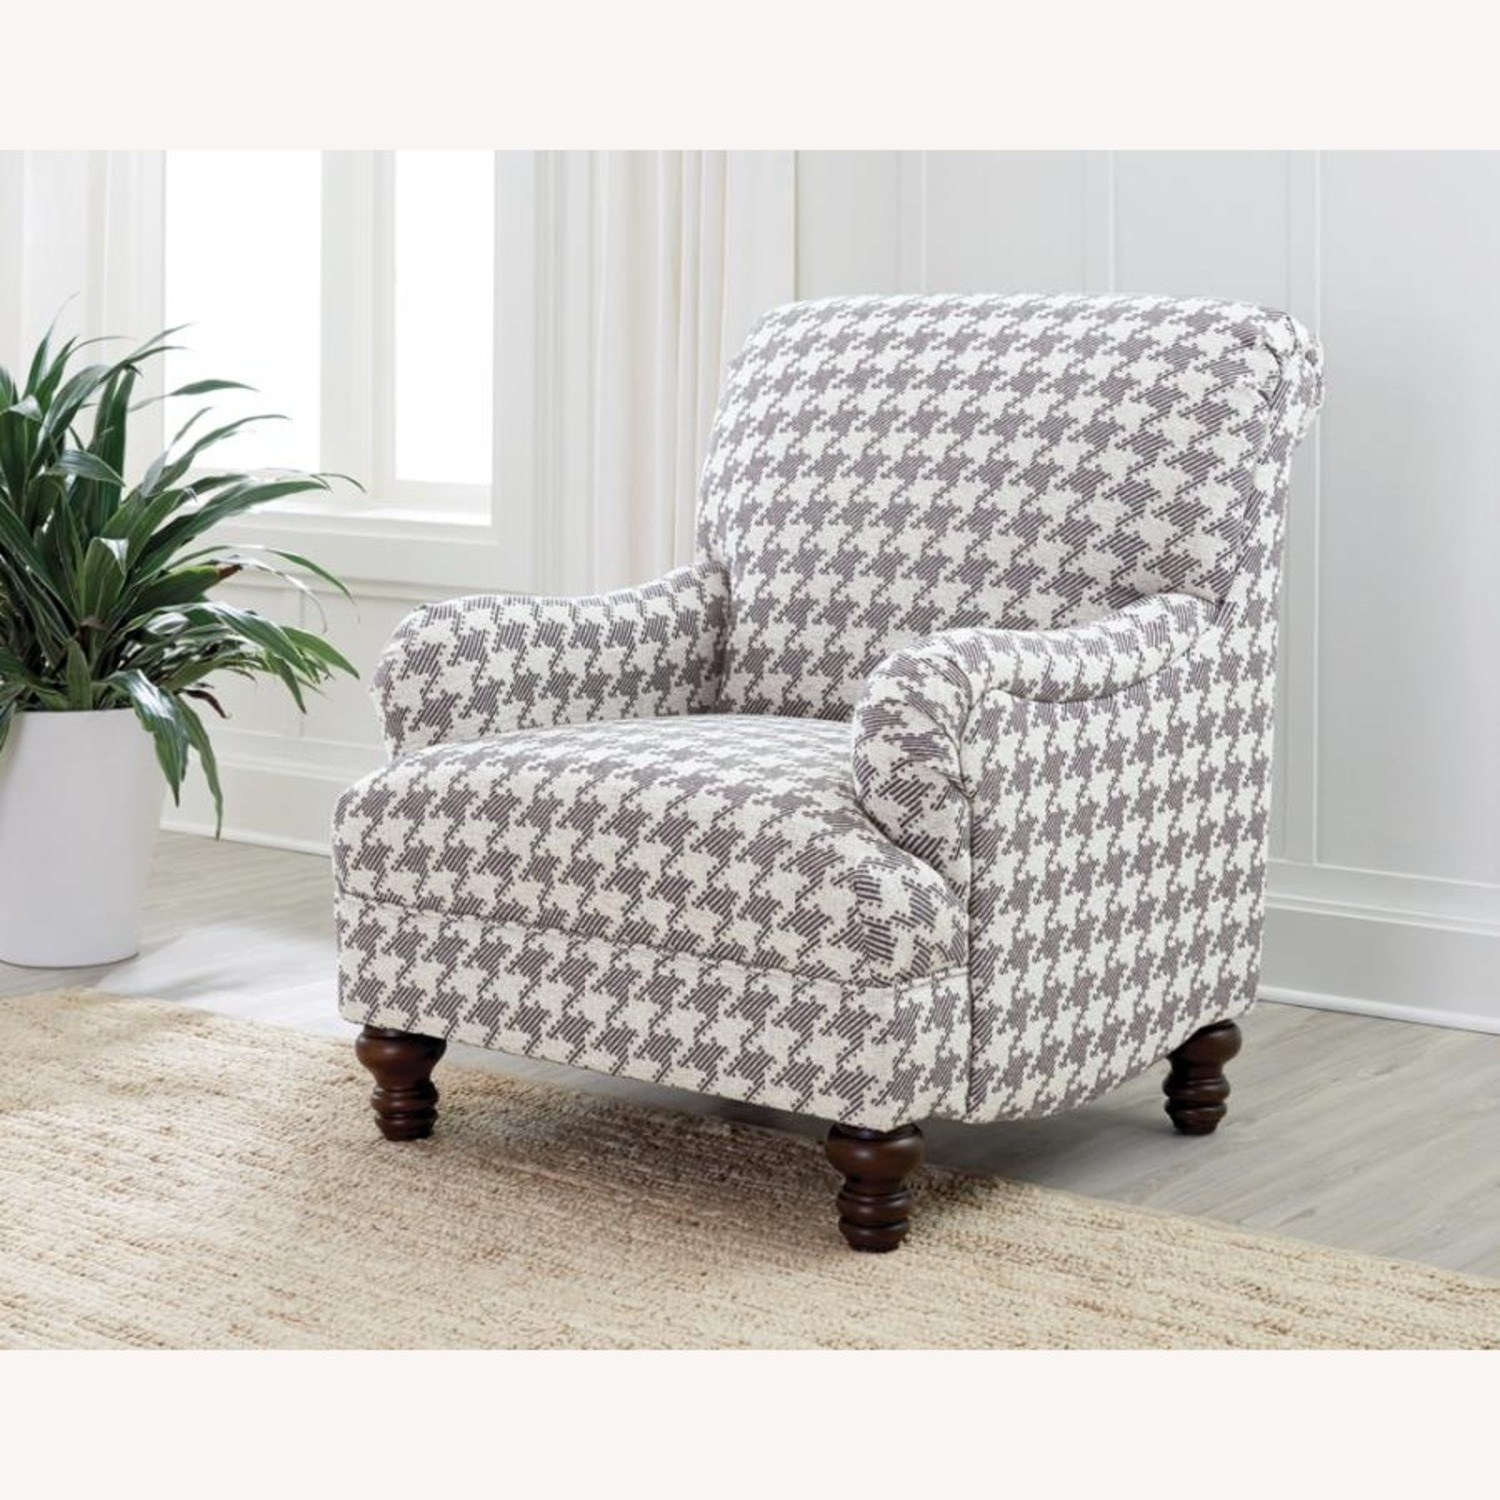 Accent Chair In Grey W Houndstooth Pattern - image-1